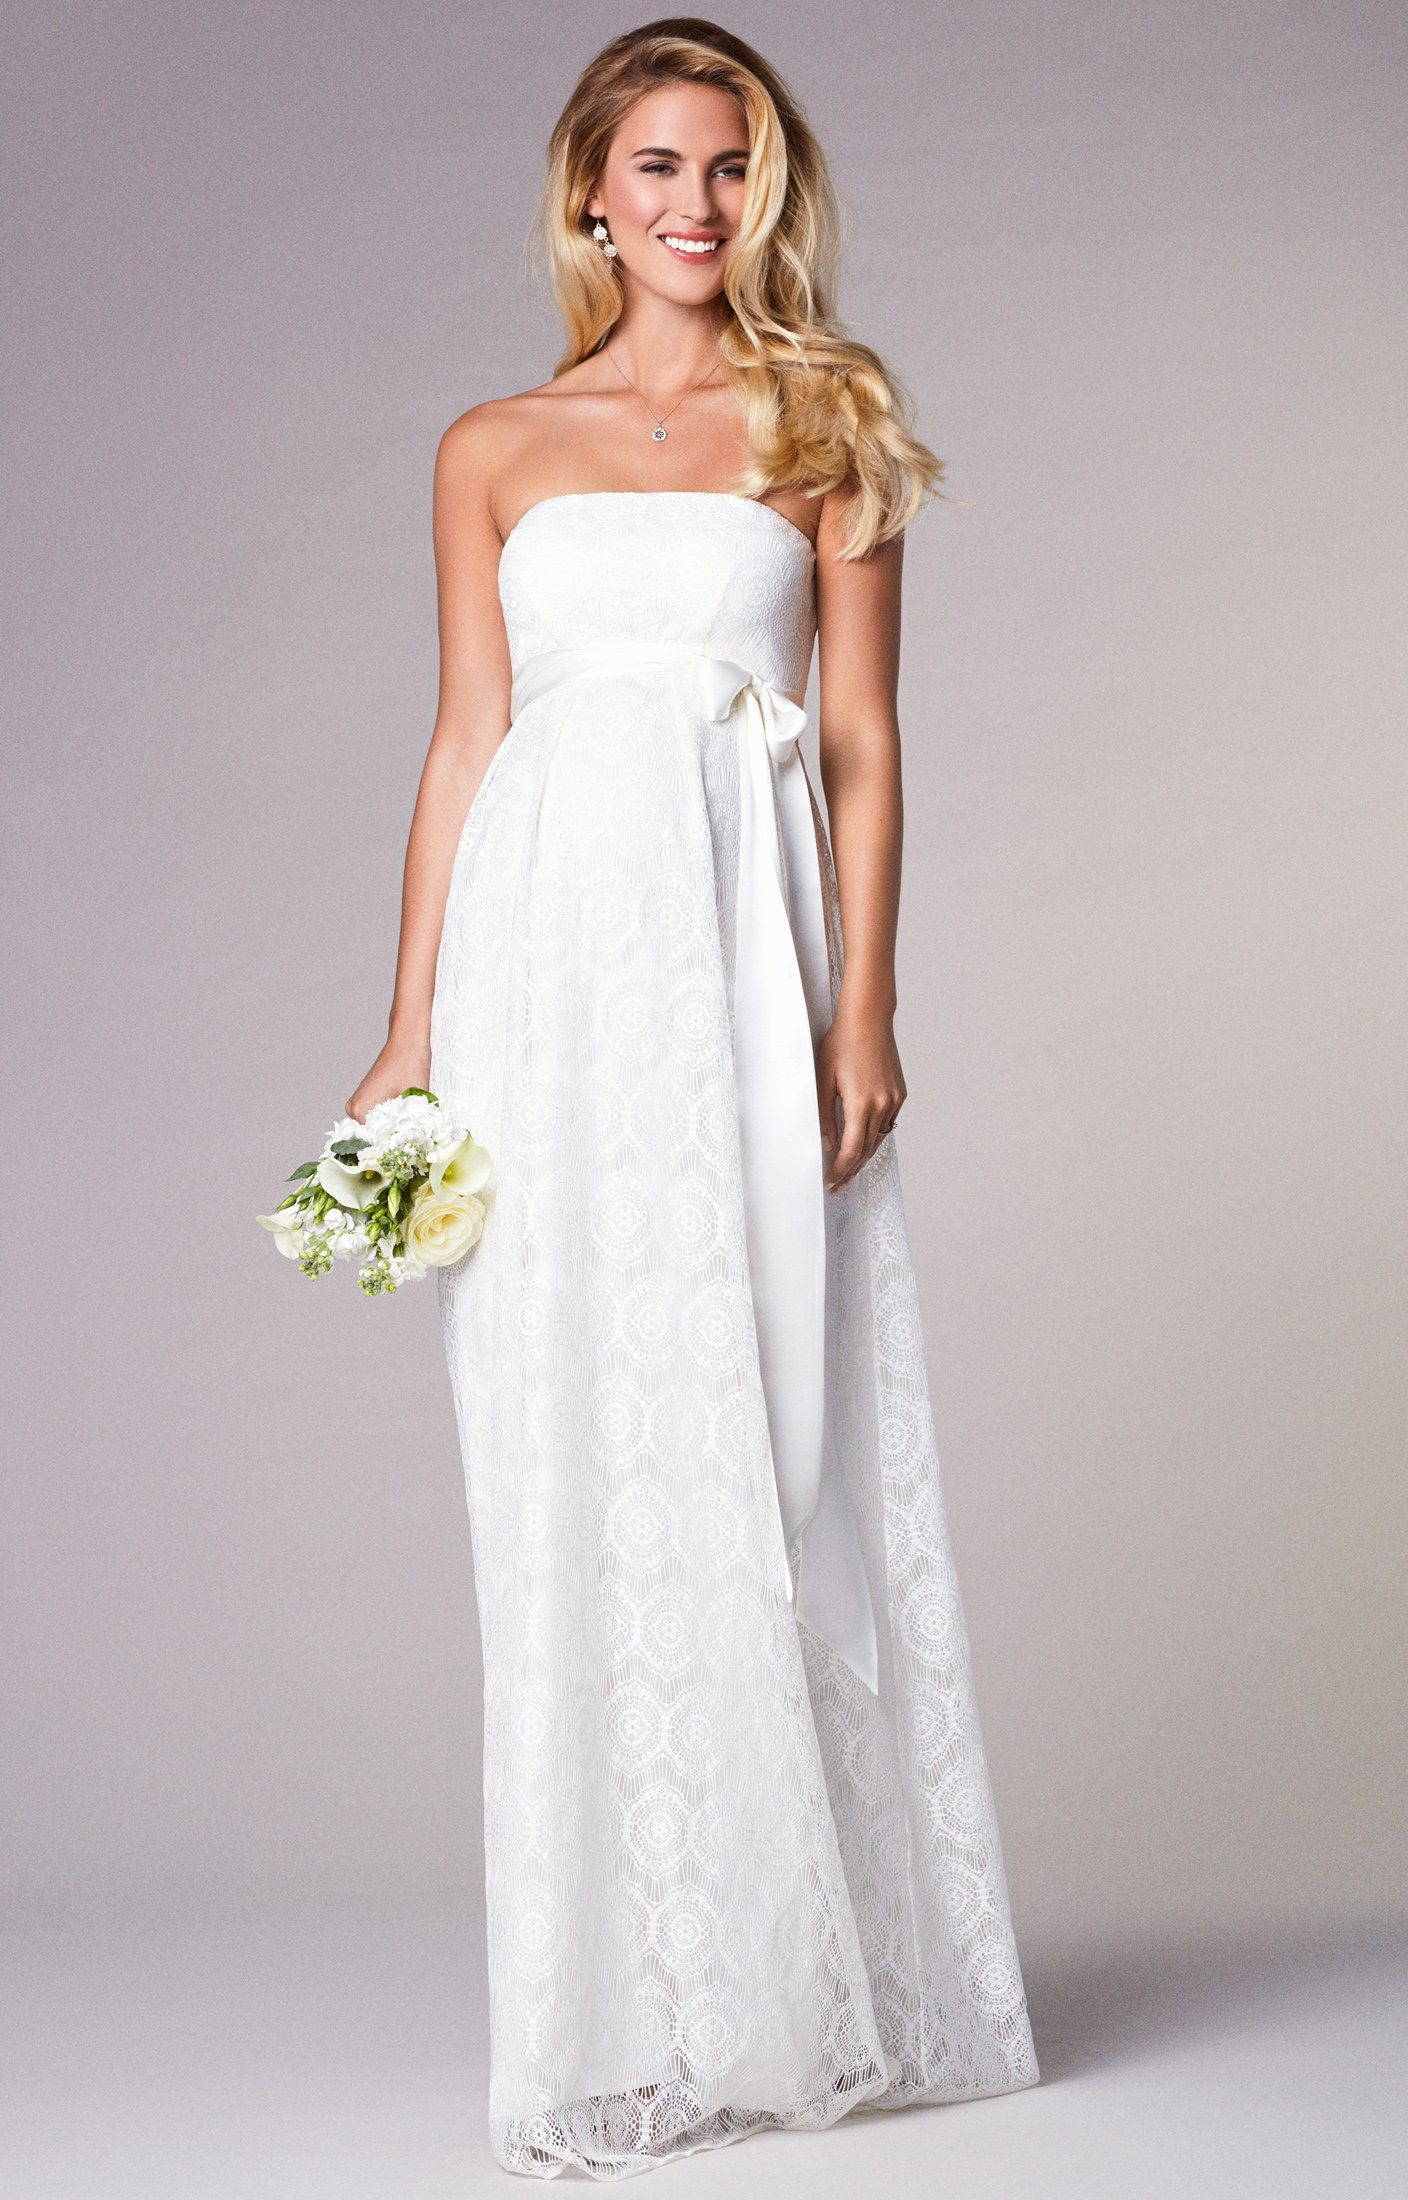 Find The Perfect Maternity Wedding Dress 10 Tips For